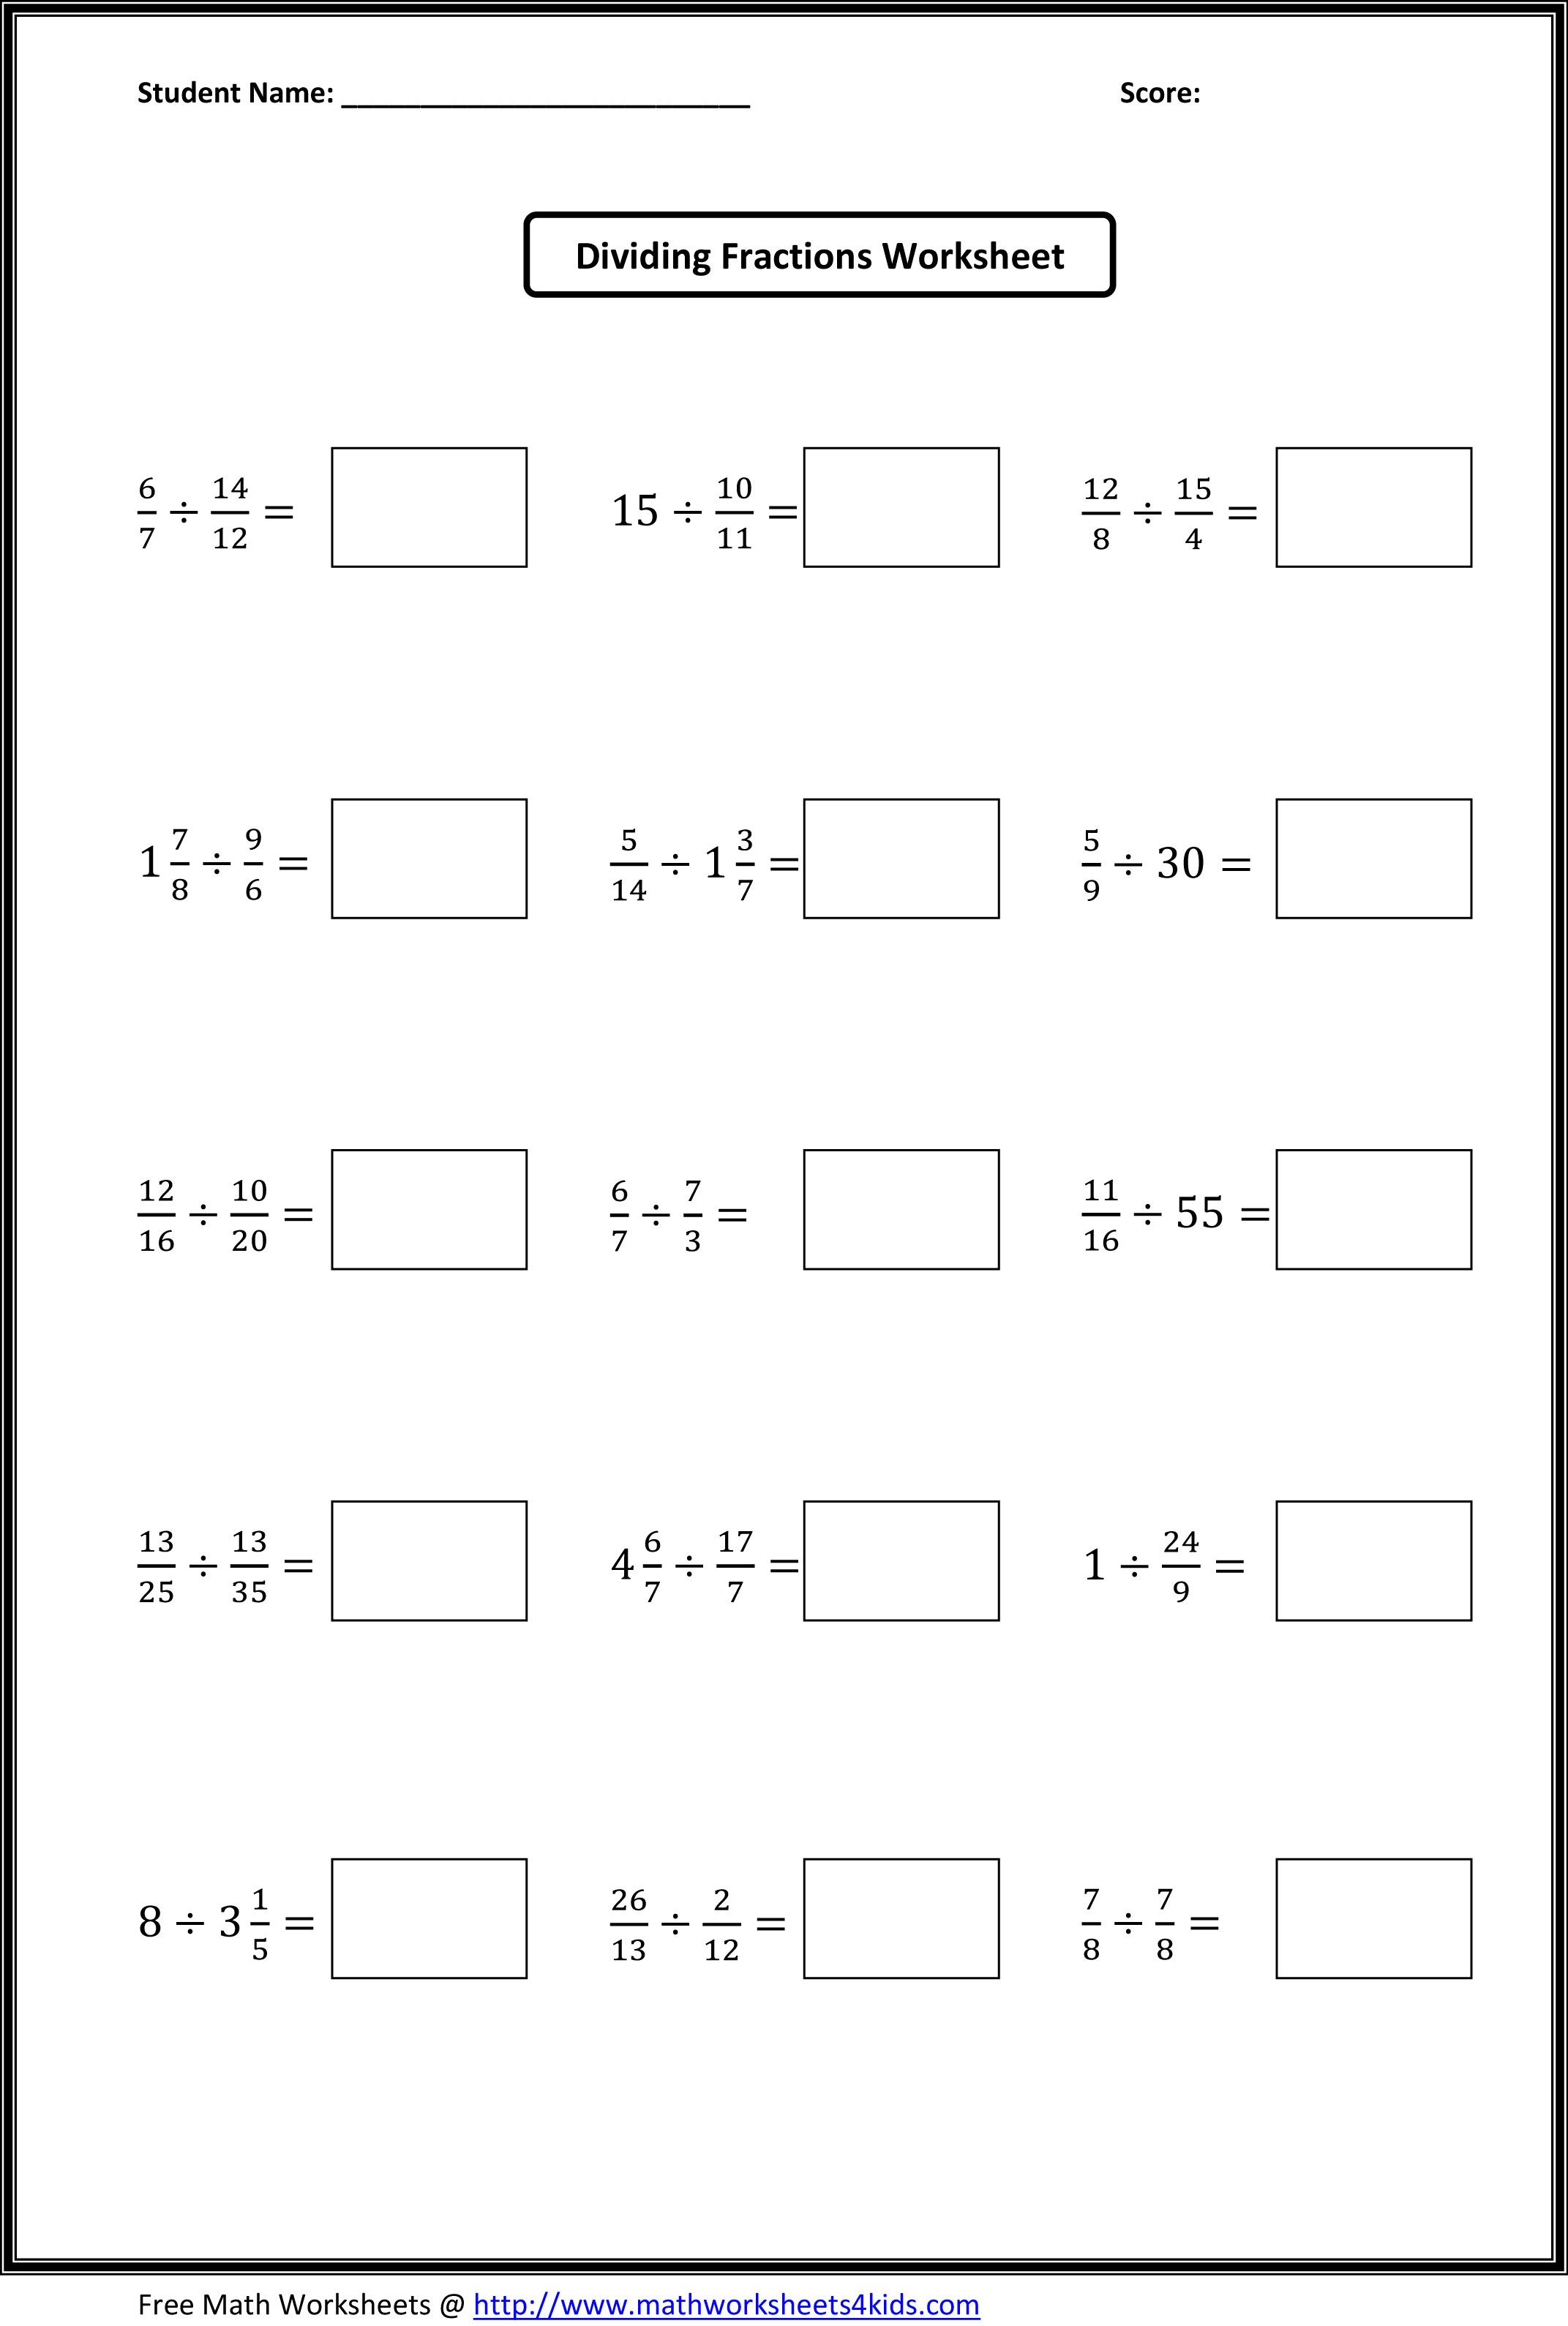 Worksheets Dividing Fractions Worksheet dividing fractions worksheets whats new pinterest worksheets